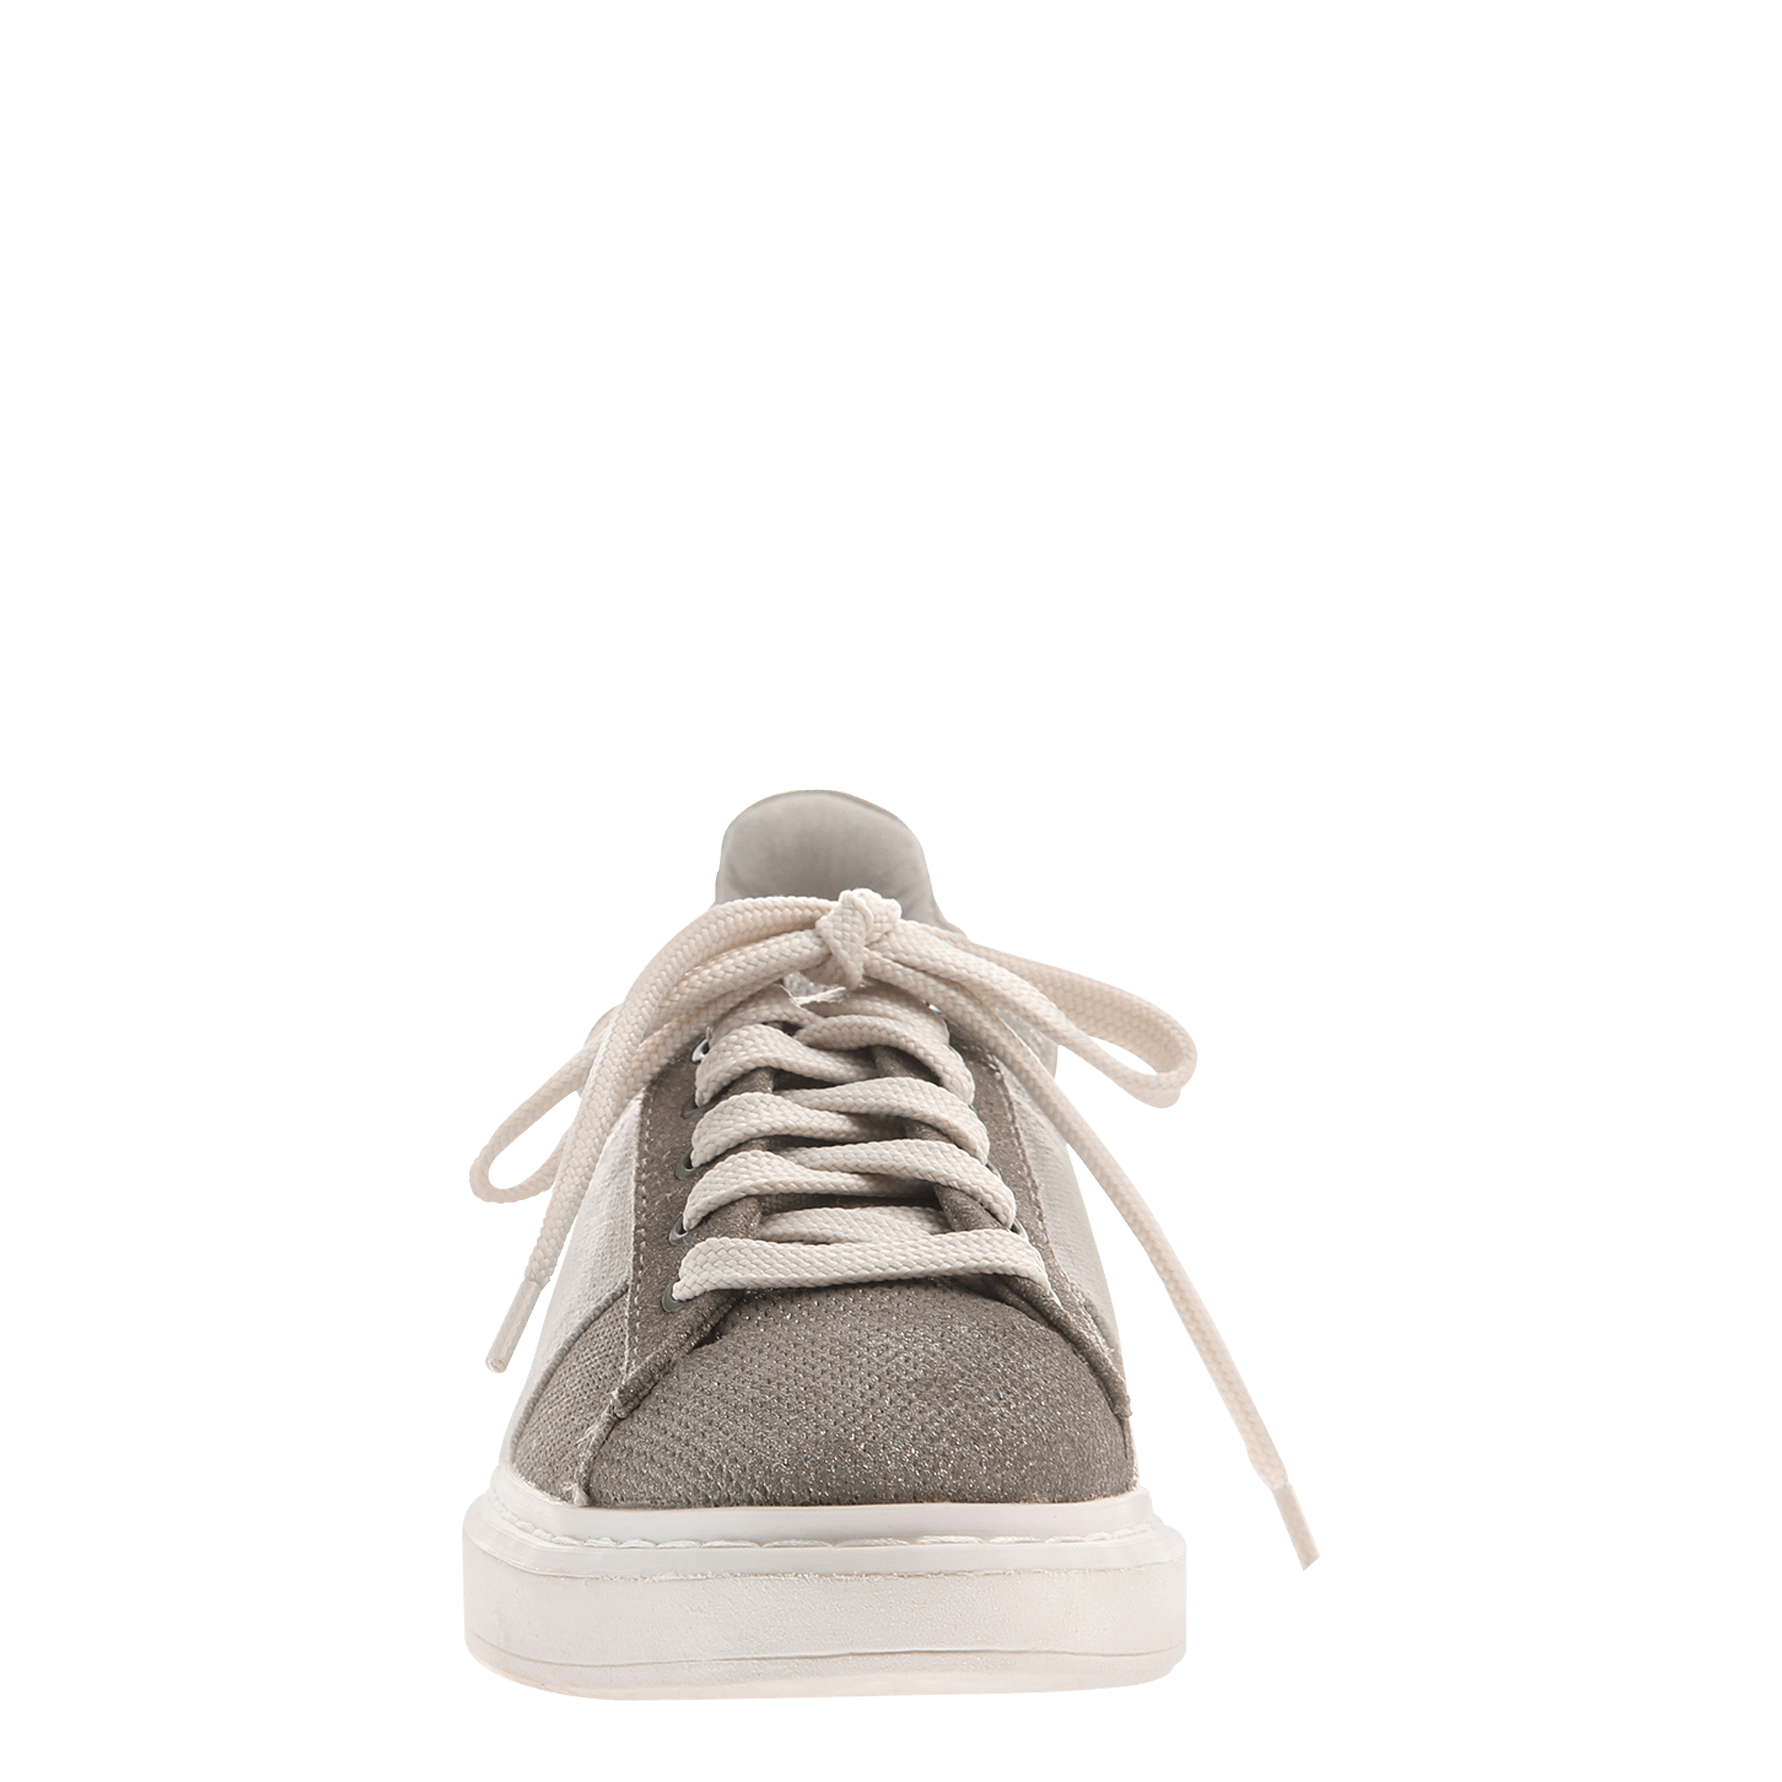 Normcore In Grey Silver Sneakers Women S Shoes By Otbt